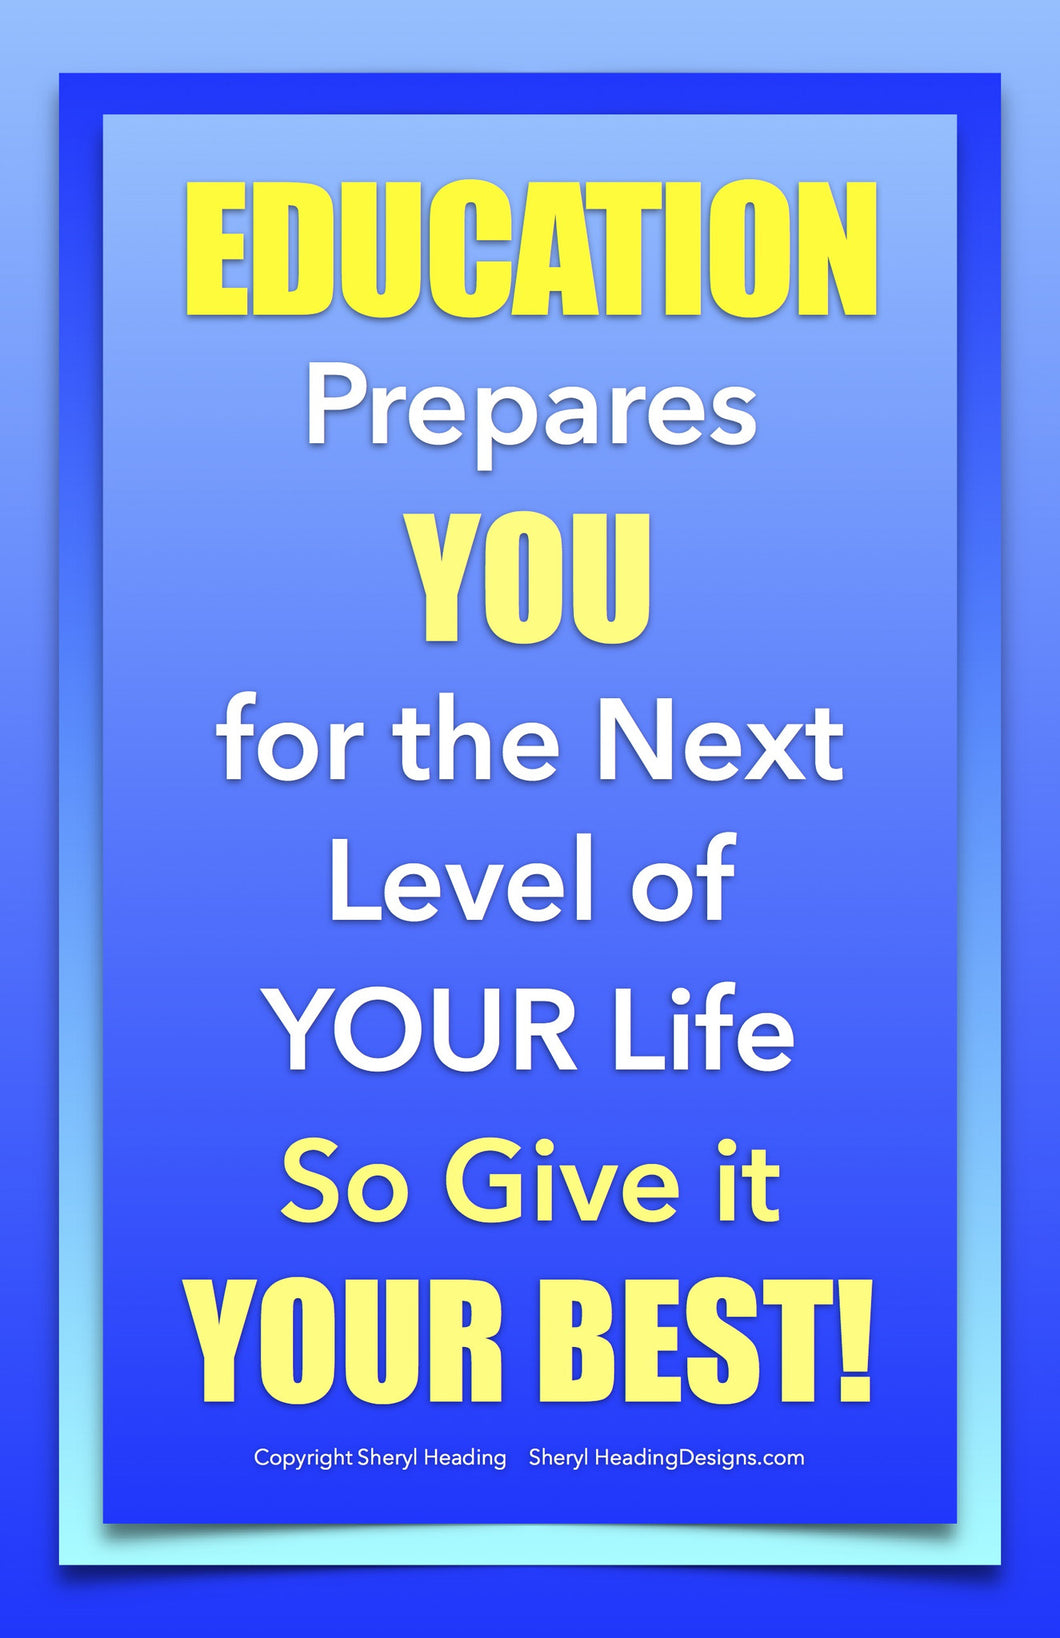 Education Prepares You For The Next Level of Your Life Poster - Sheryl Heading Designs